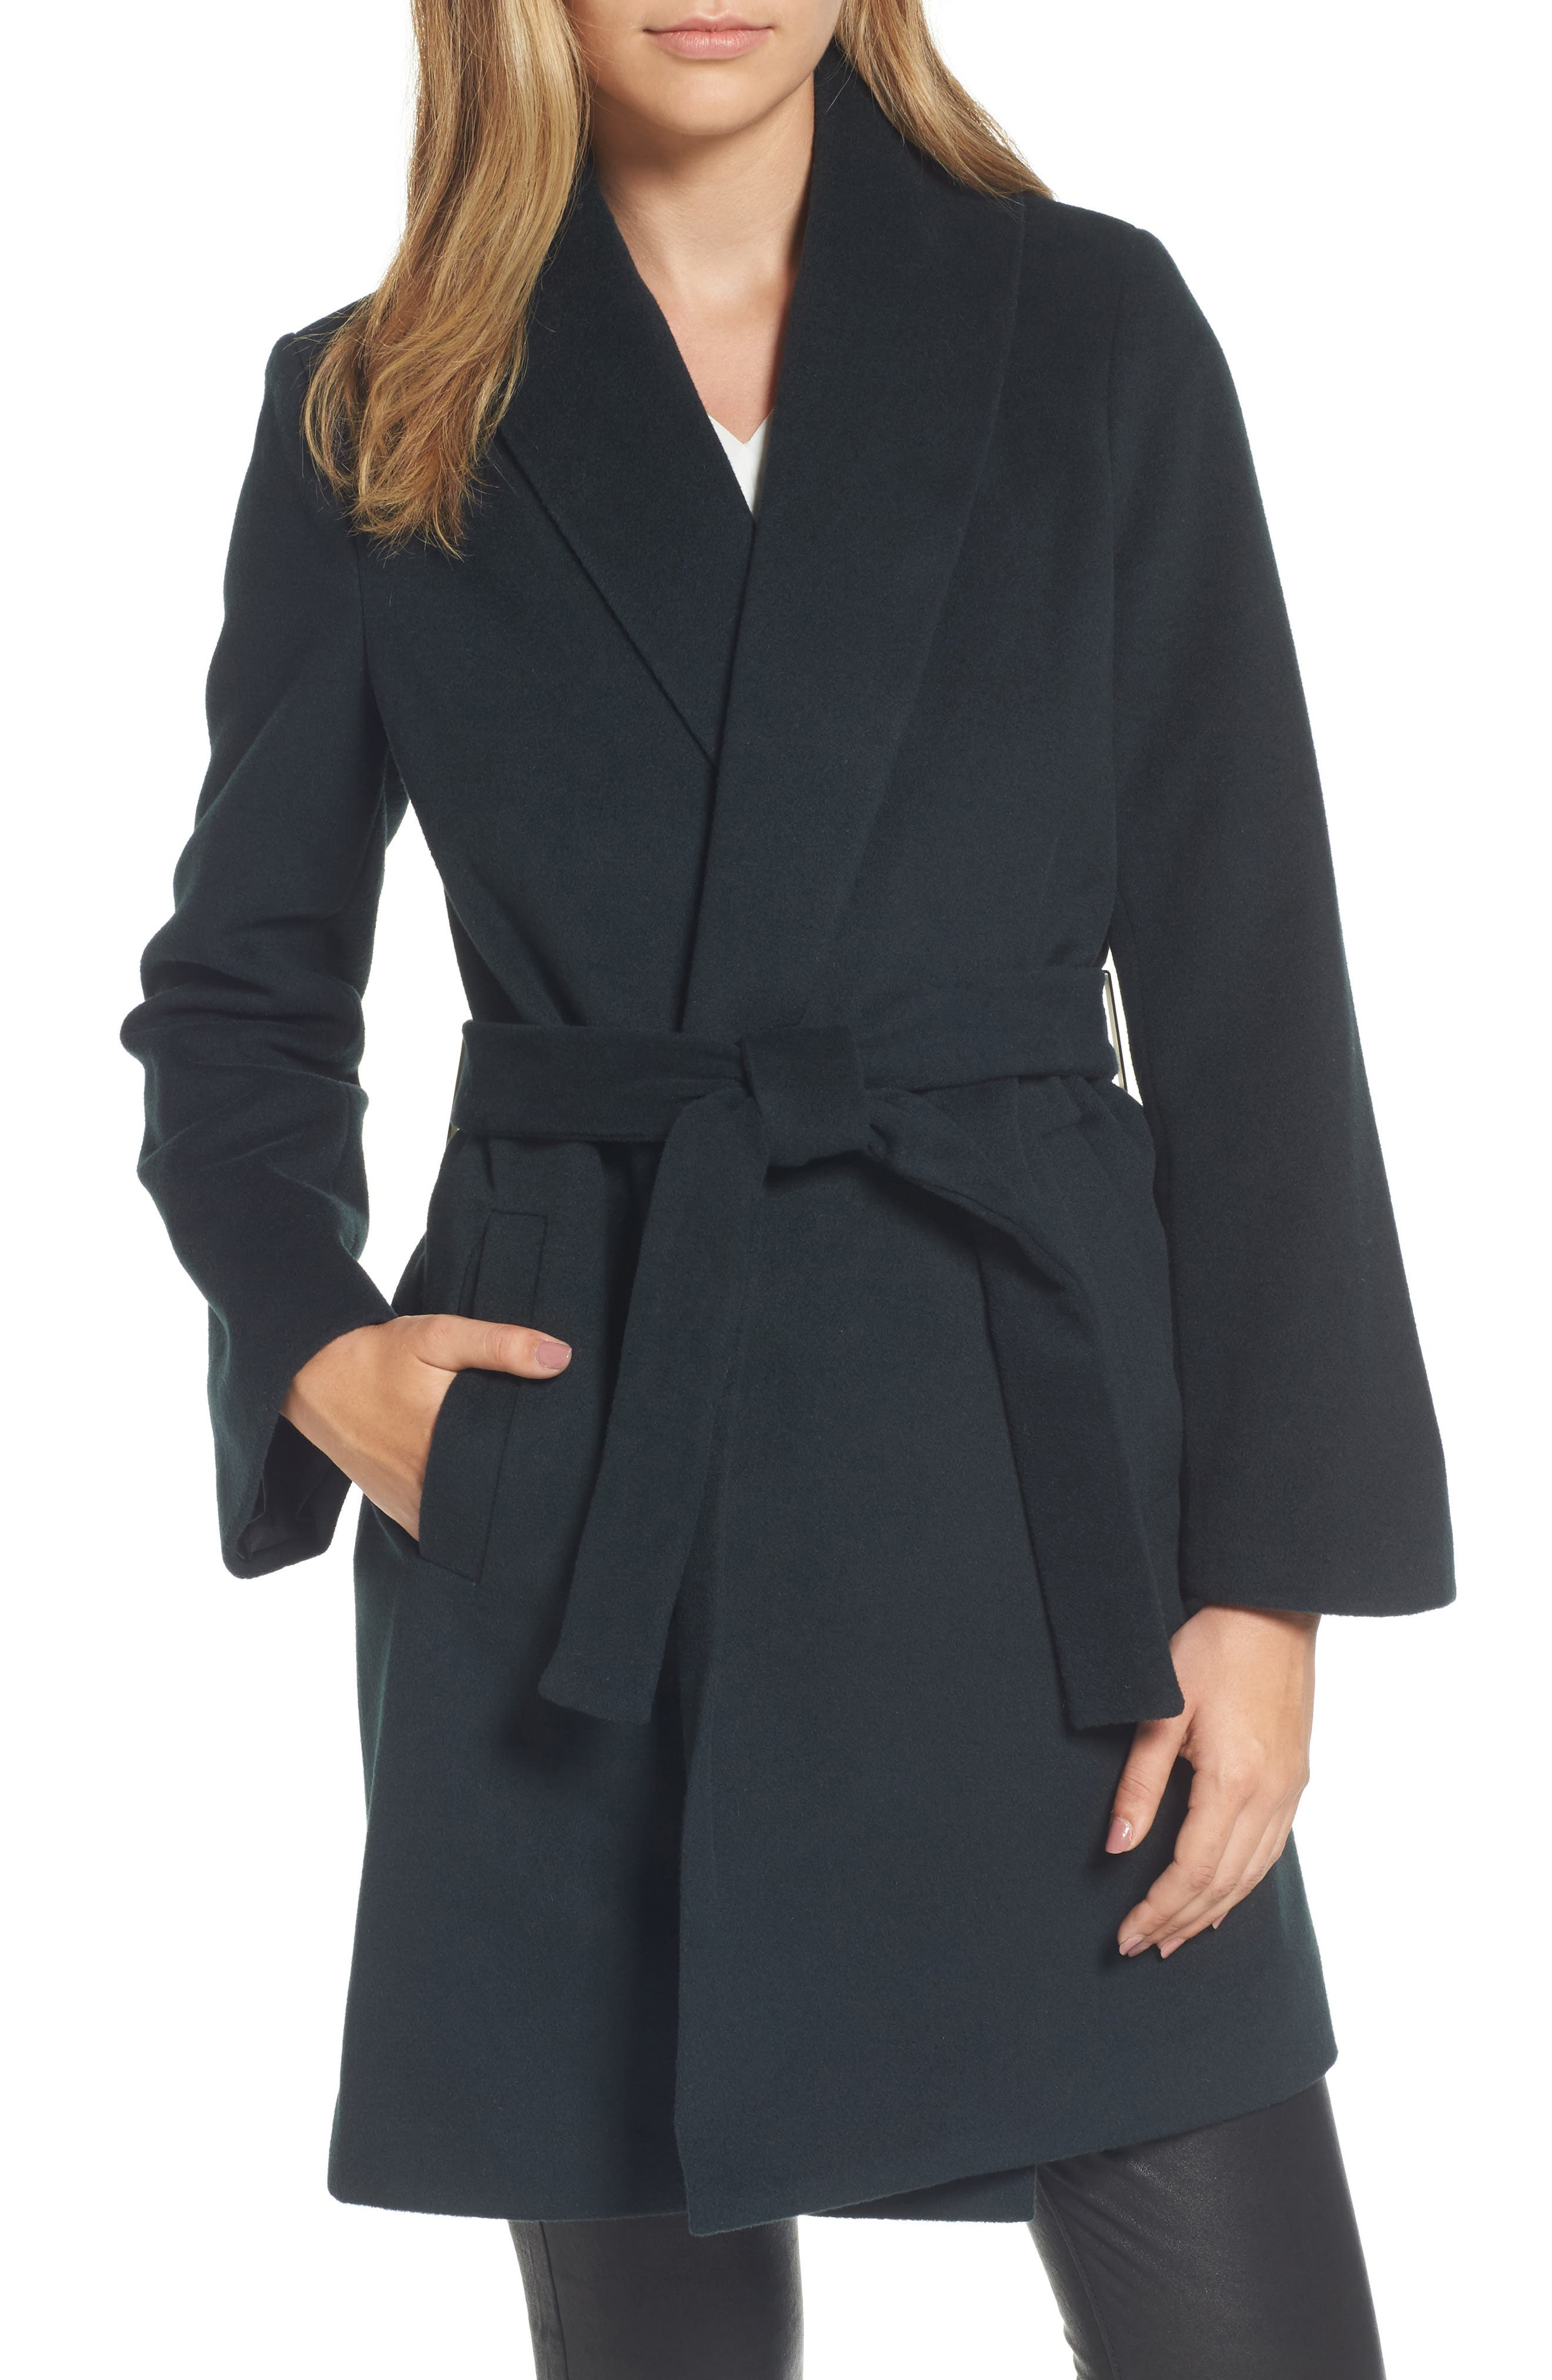 Tahari Gabrielle Wool Blend Long Wrap Coat